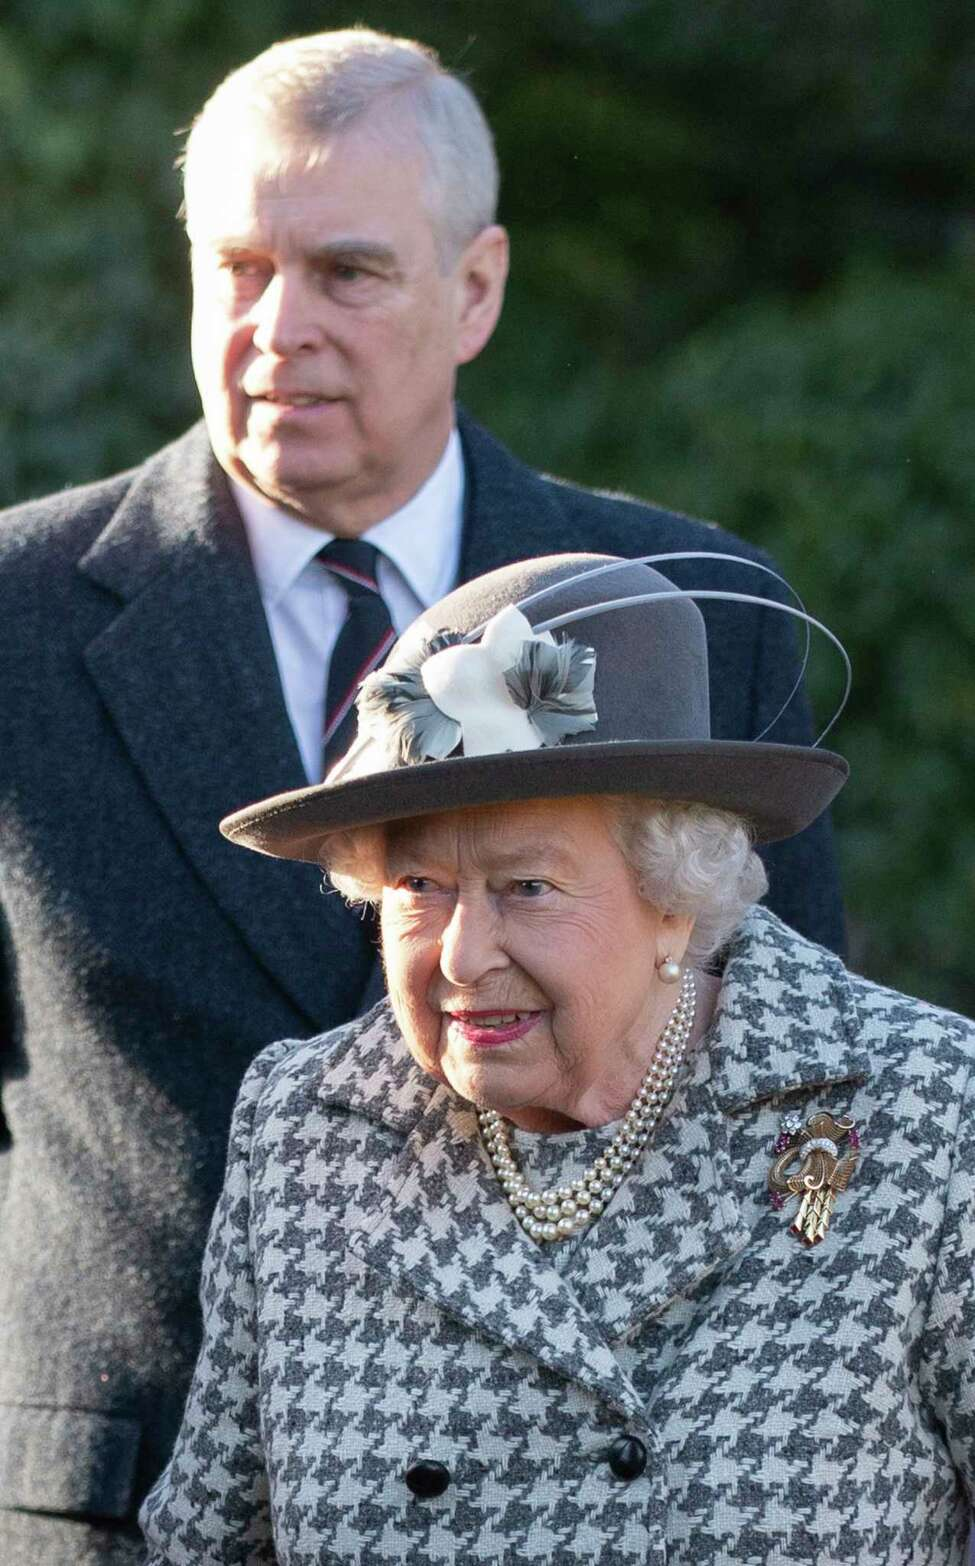 Britain's Queen Elizabeth II and Prince Andrew arrive at St Mary the Virgin, in Hillington, England, to attend a Sunday church service, Sunday, Jan. 19, 2020. Buckingham Palace says Prince Harry and his wife, Meghan, will no longer use the titles